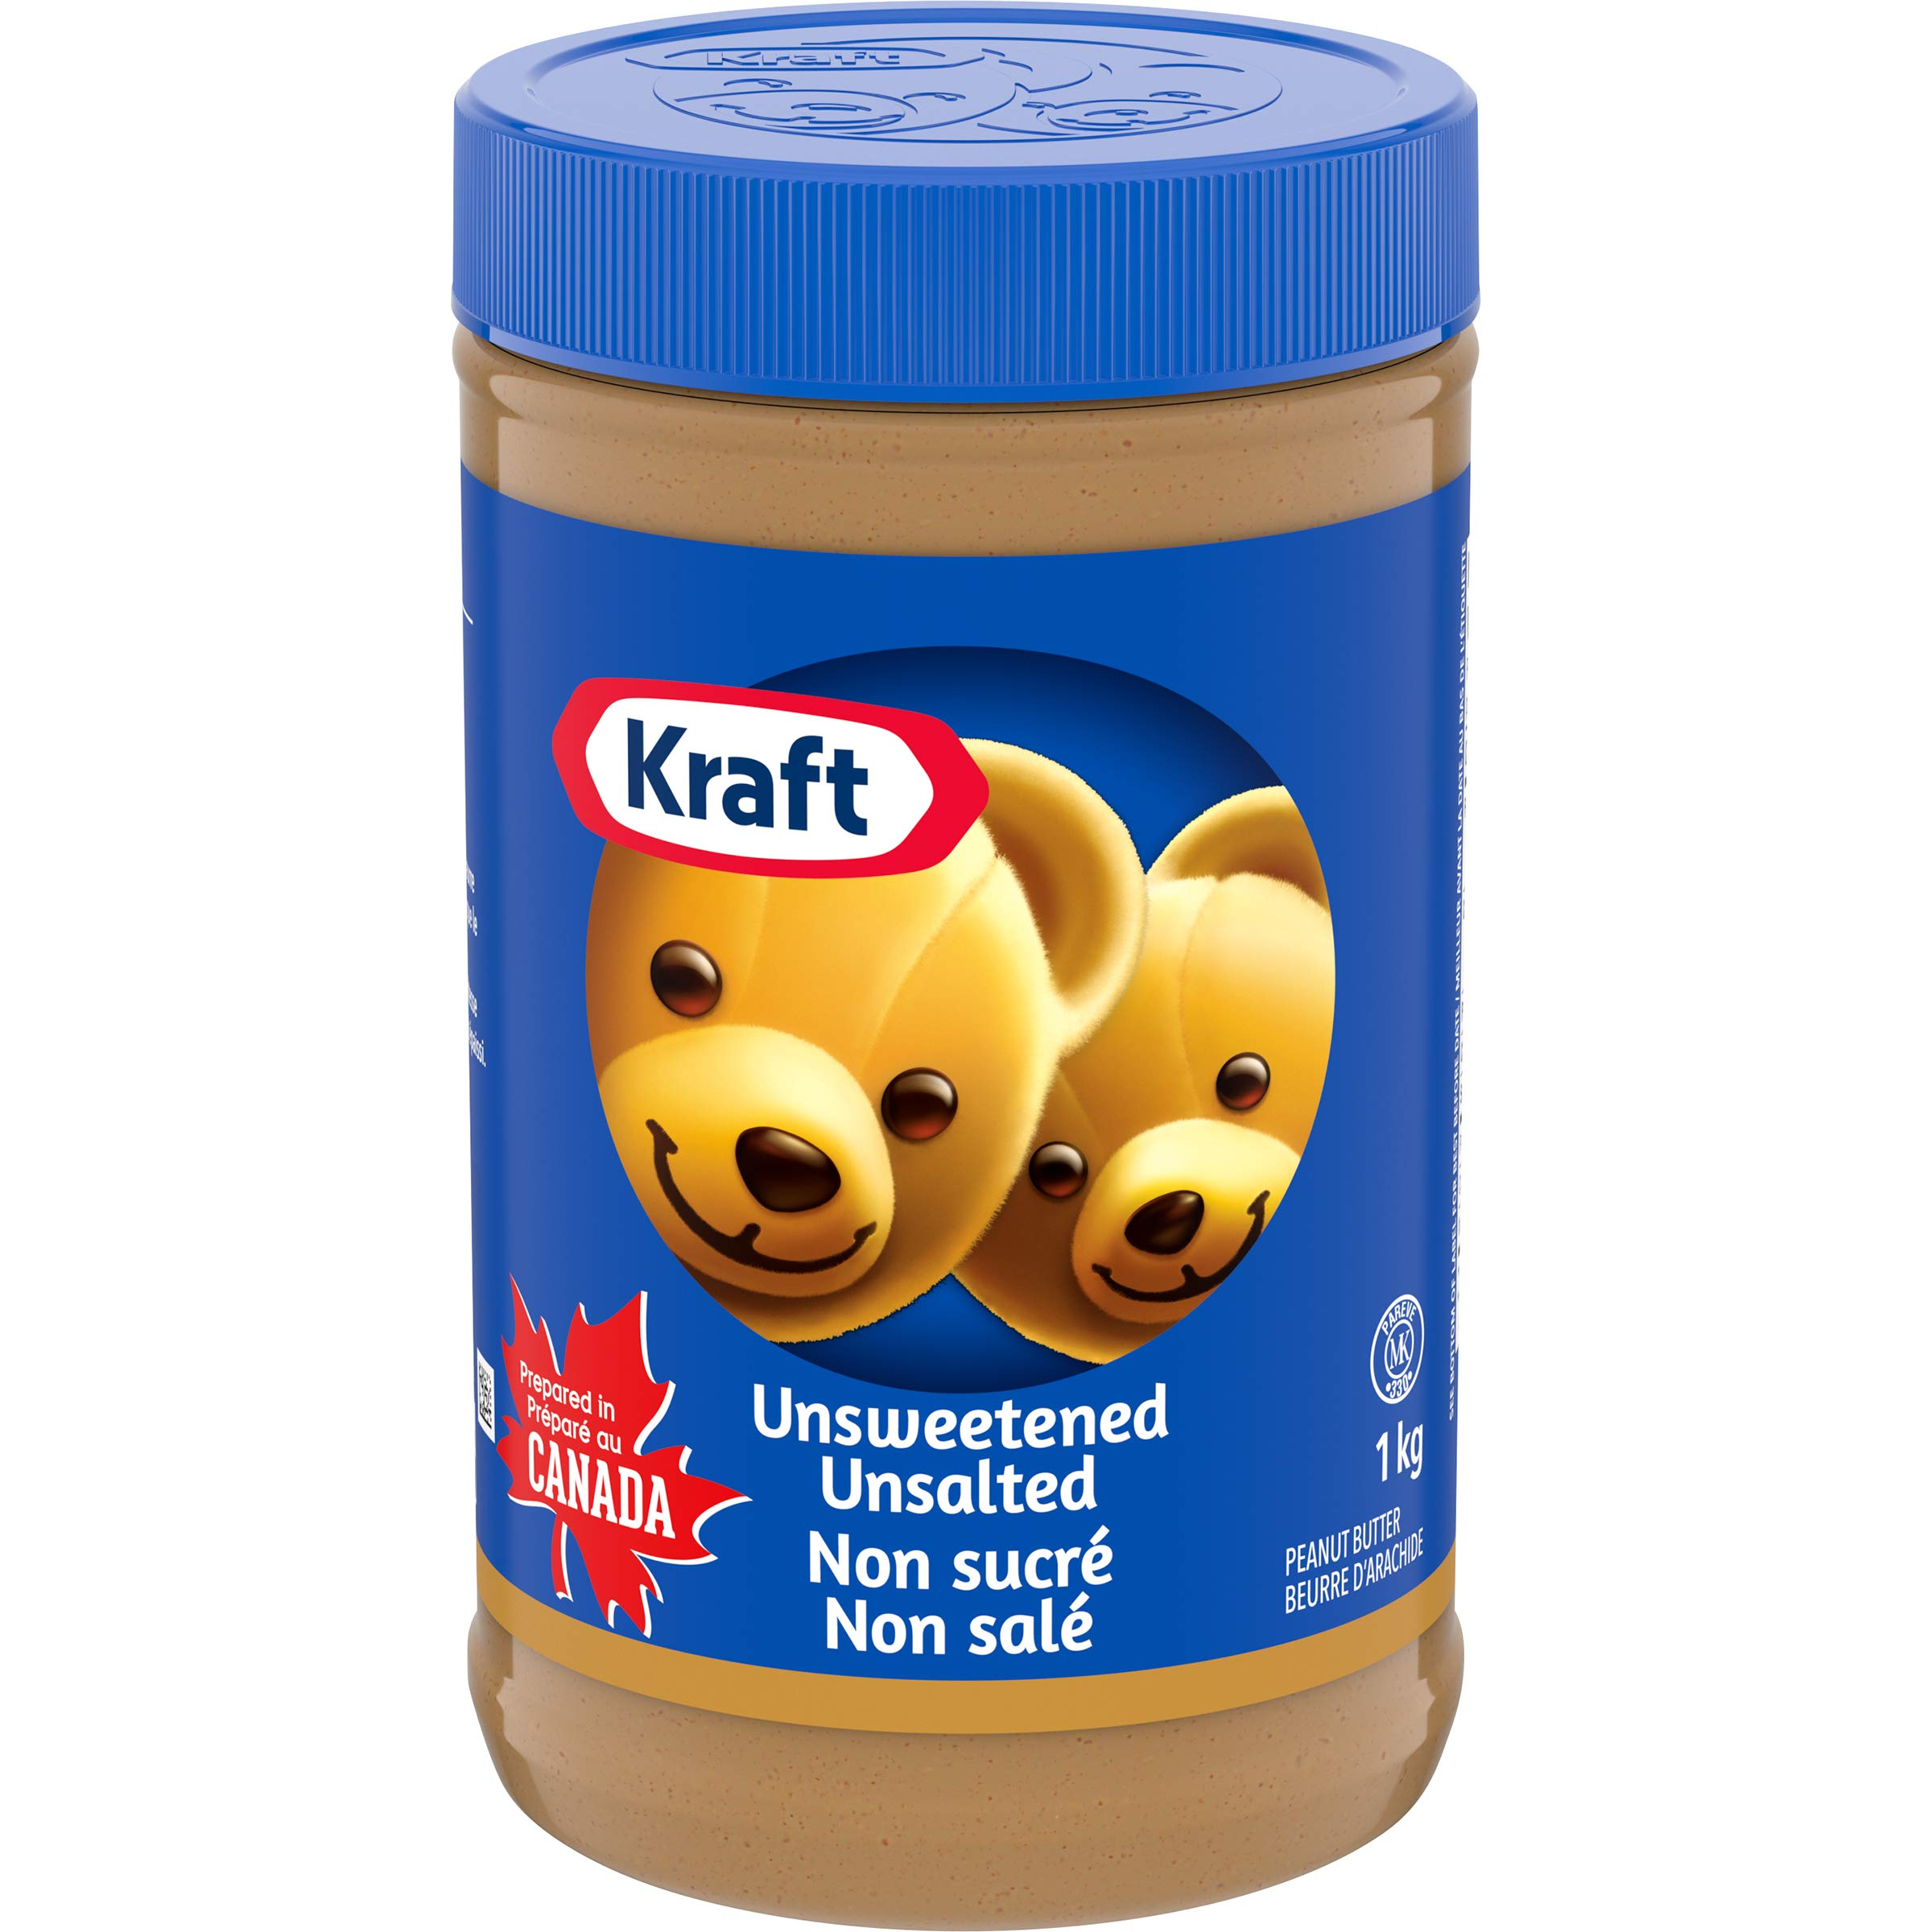 KRAFT Peanut Butter, Unsweetened/Unsalted Smooth, 1Kg/2.2lbs {Canadian}